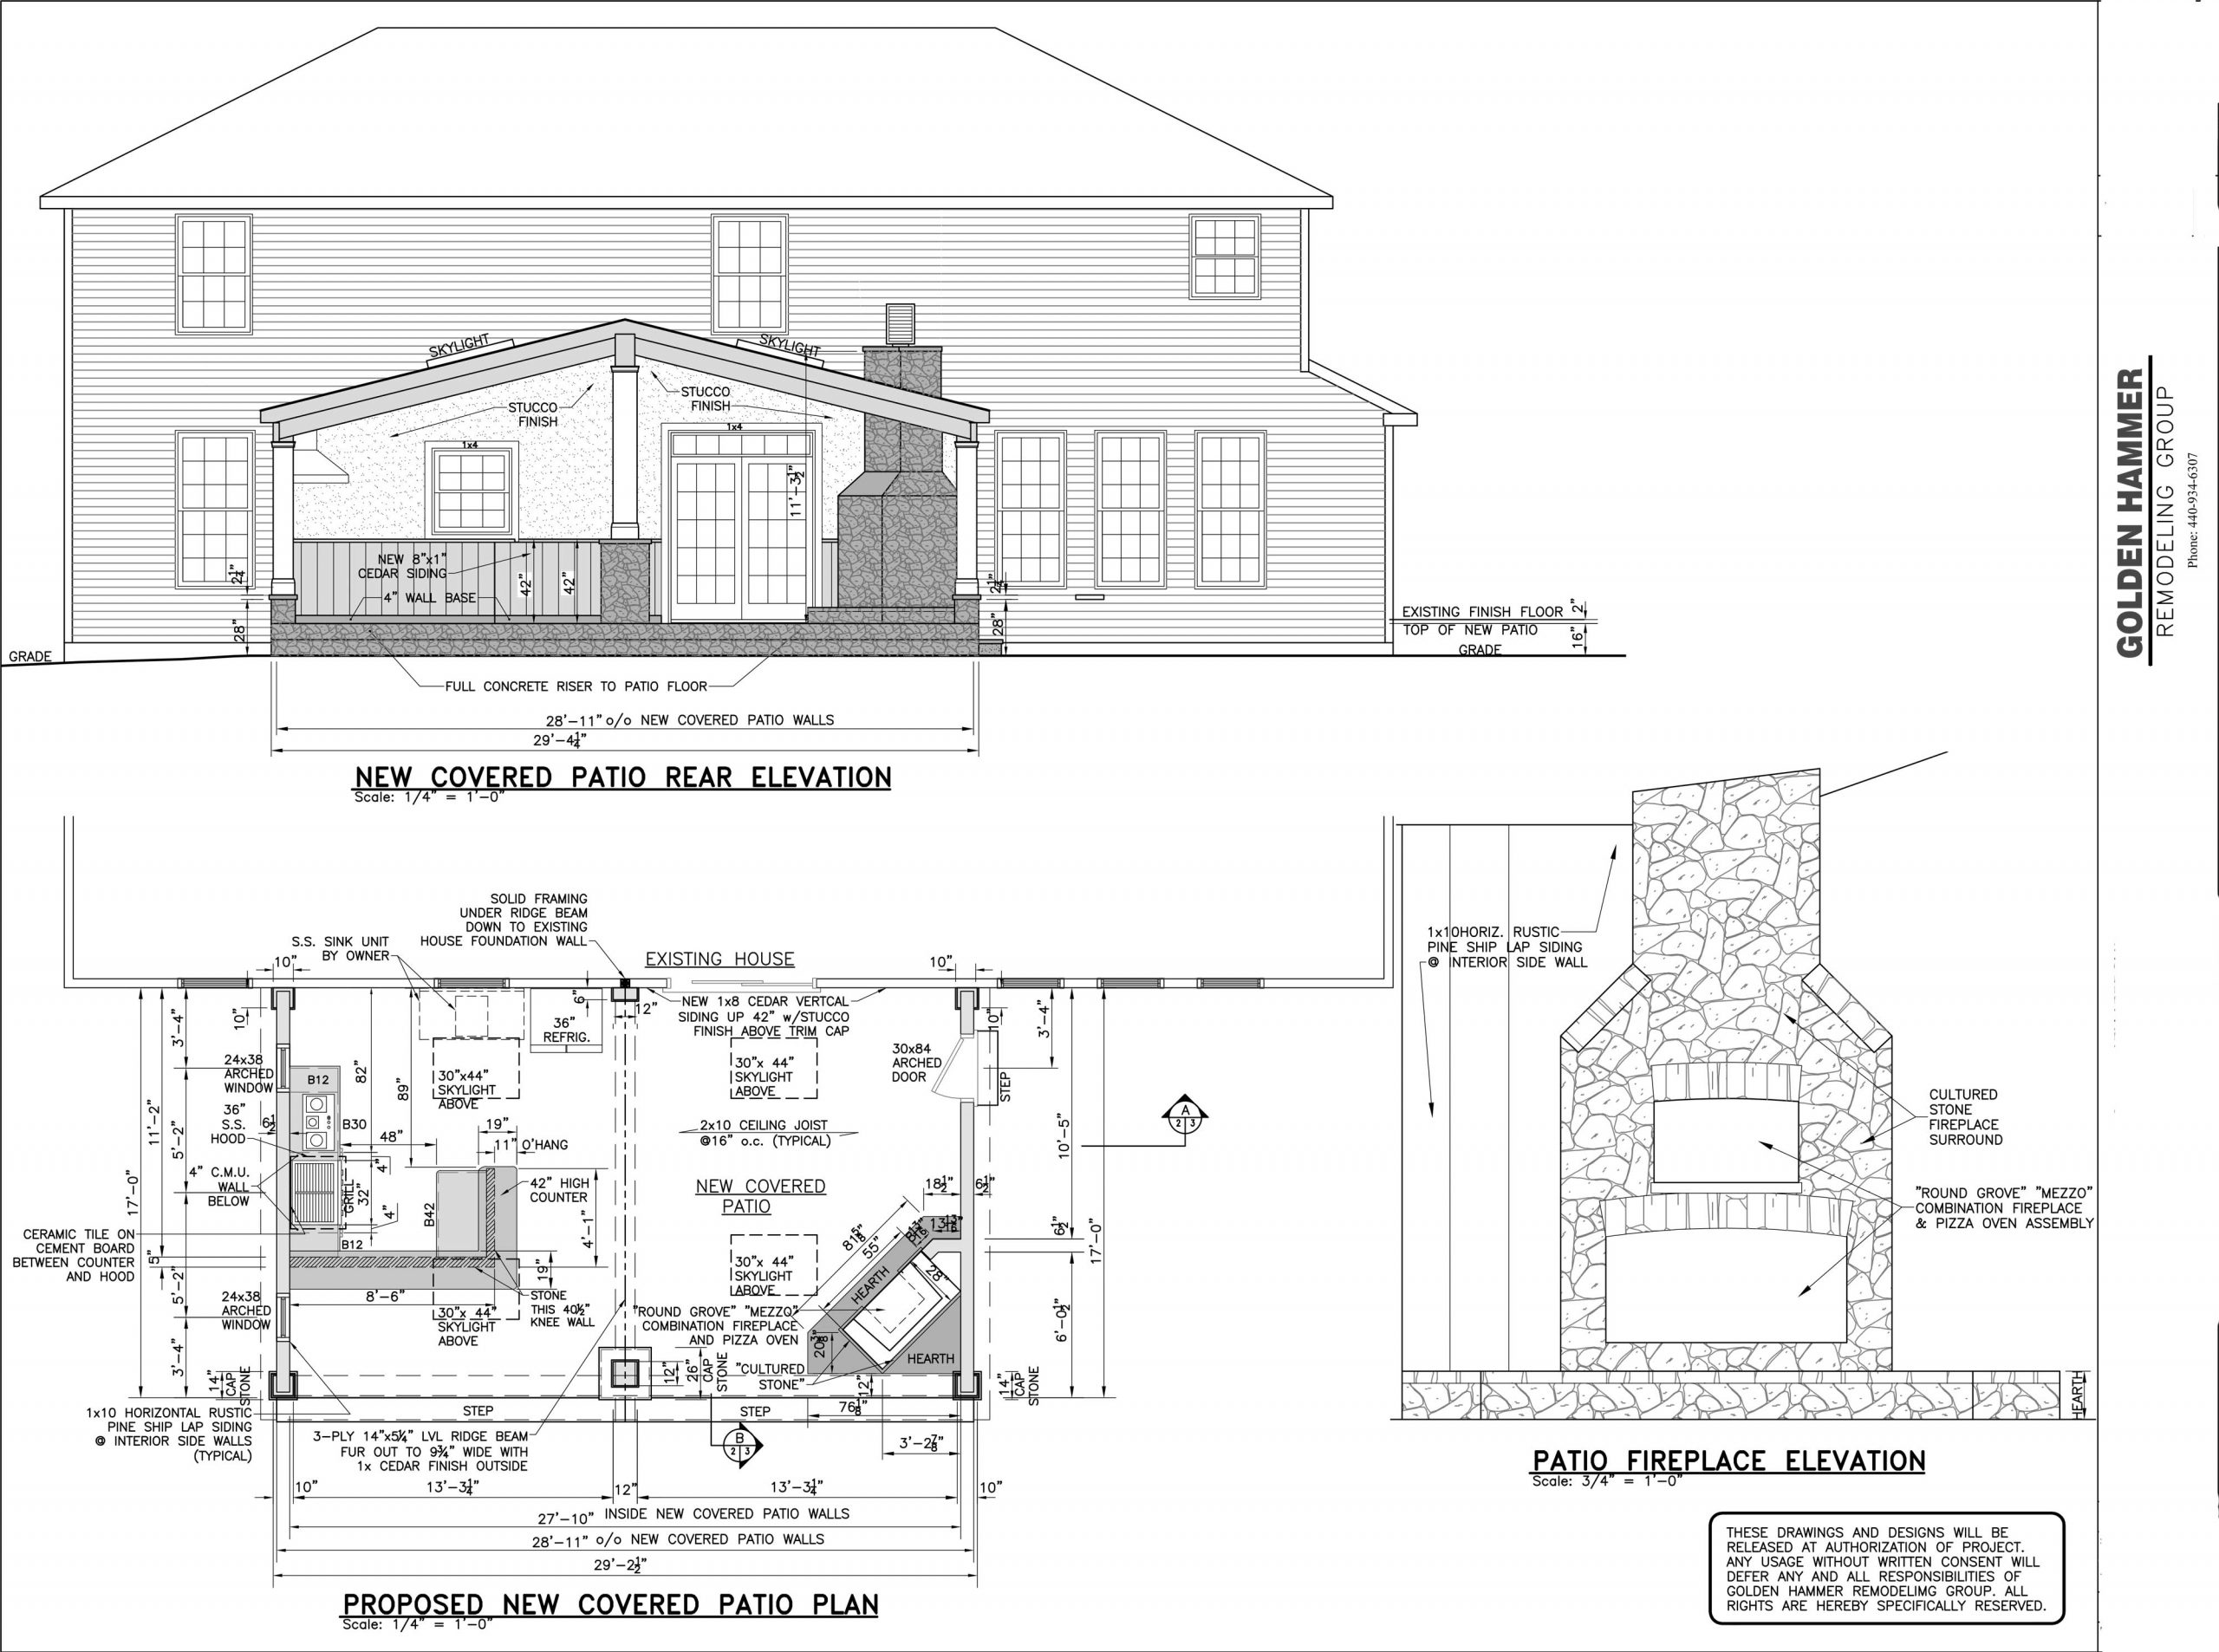 proposed new covered patio plan